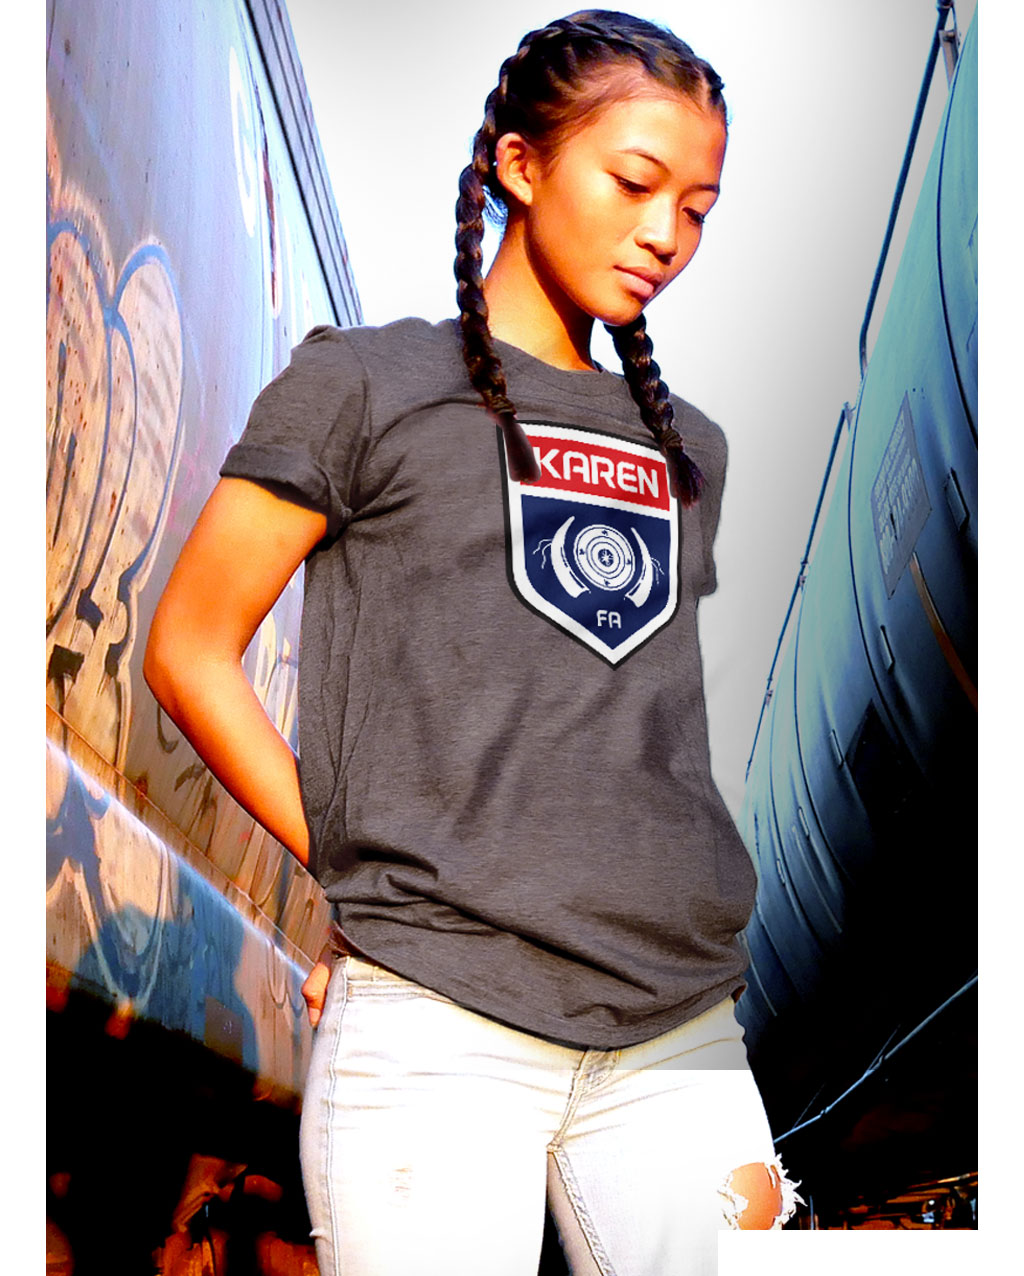 karen-national-team-full-image-header-mobile-womens-tops